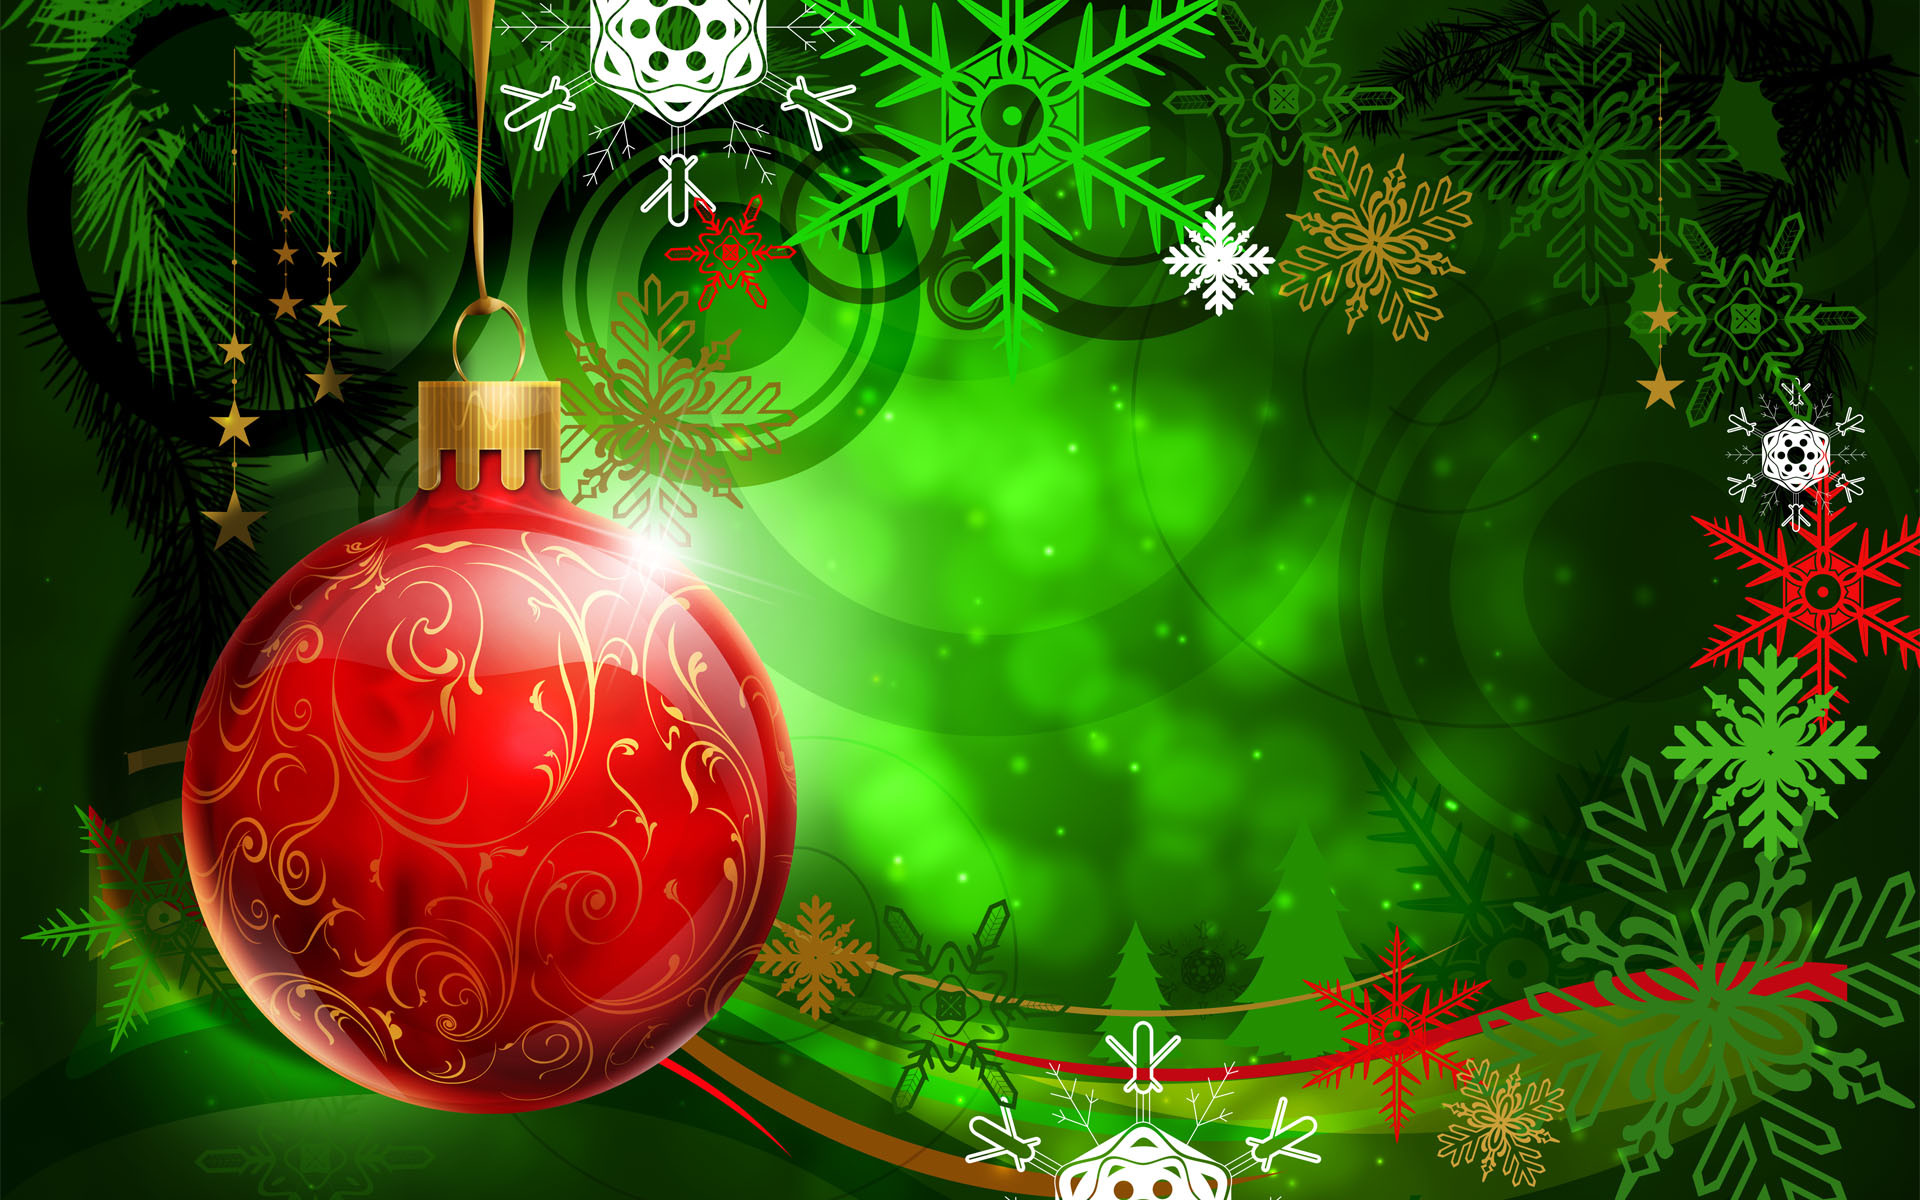 Red Christmas Ball on Green Background Wallpapers – HD Wallpapers 16426